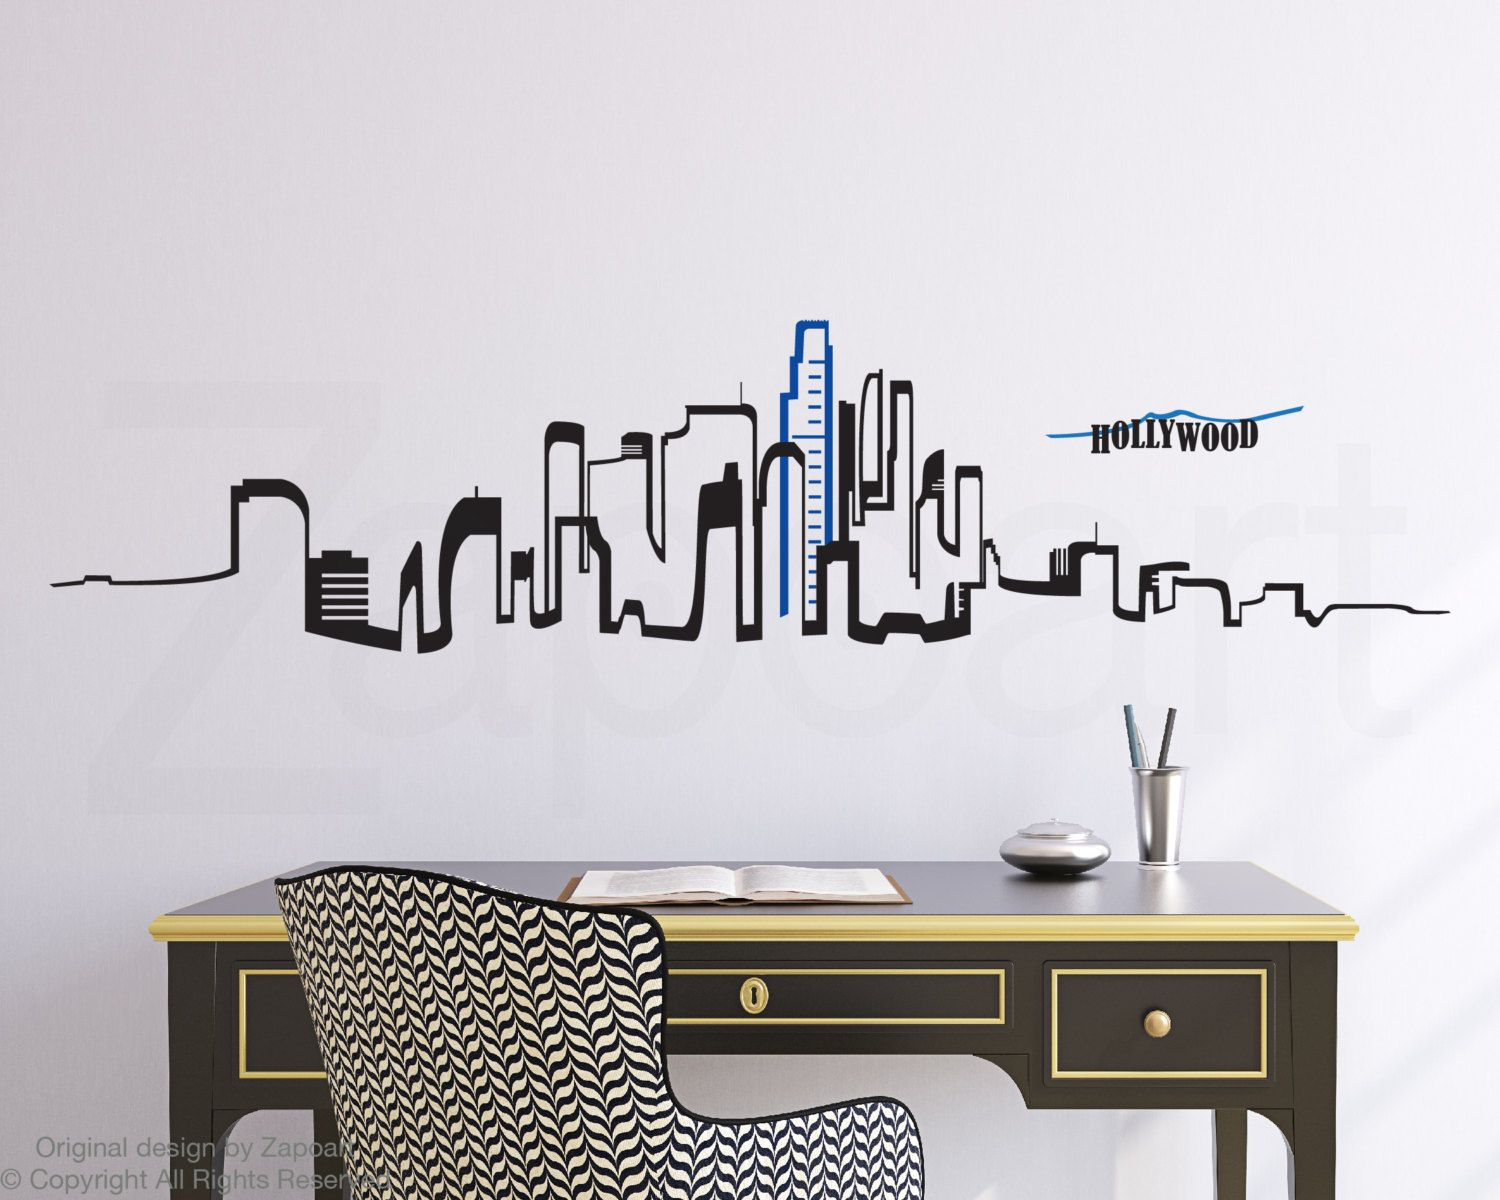 Los Angeles Skyline Mur Vinyle Autocollant By Zapoart On Etsy Los Angeles Skyline Vinyl Wall Decals Skyline Tattoo